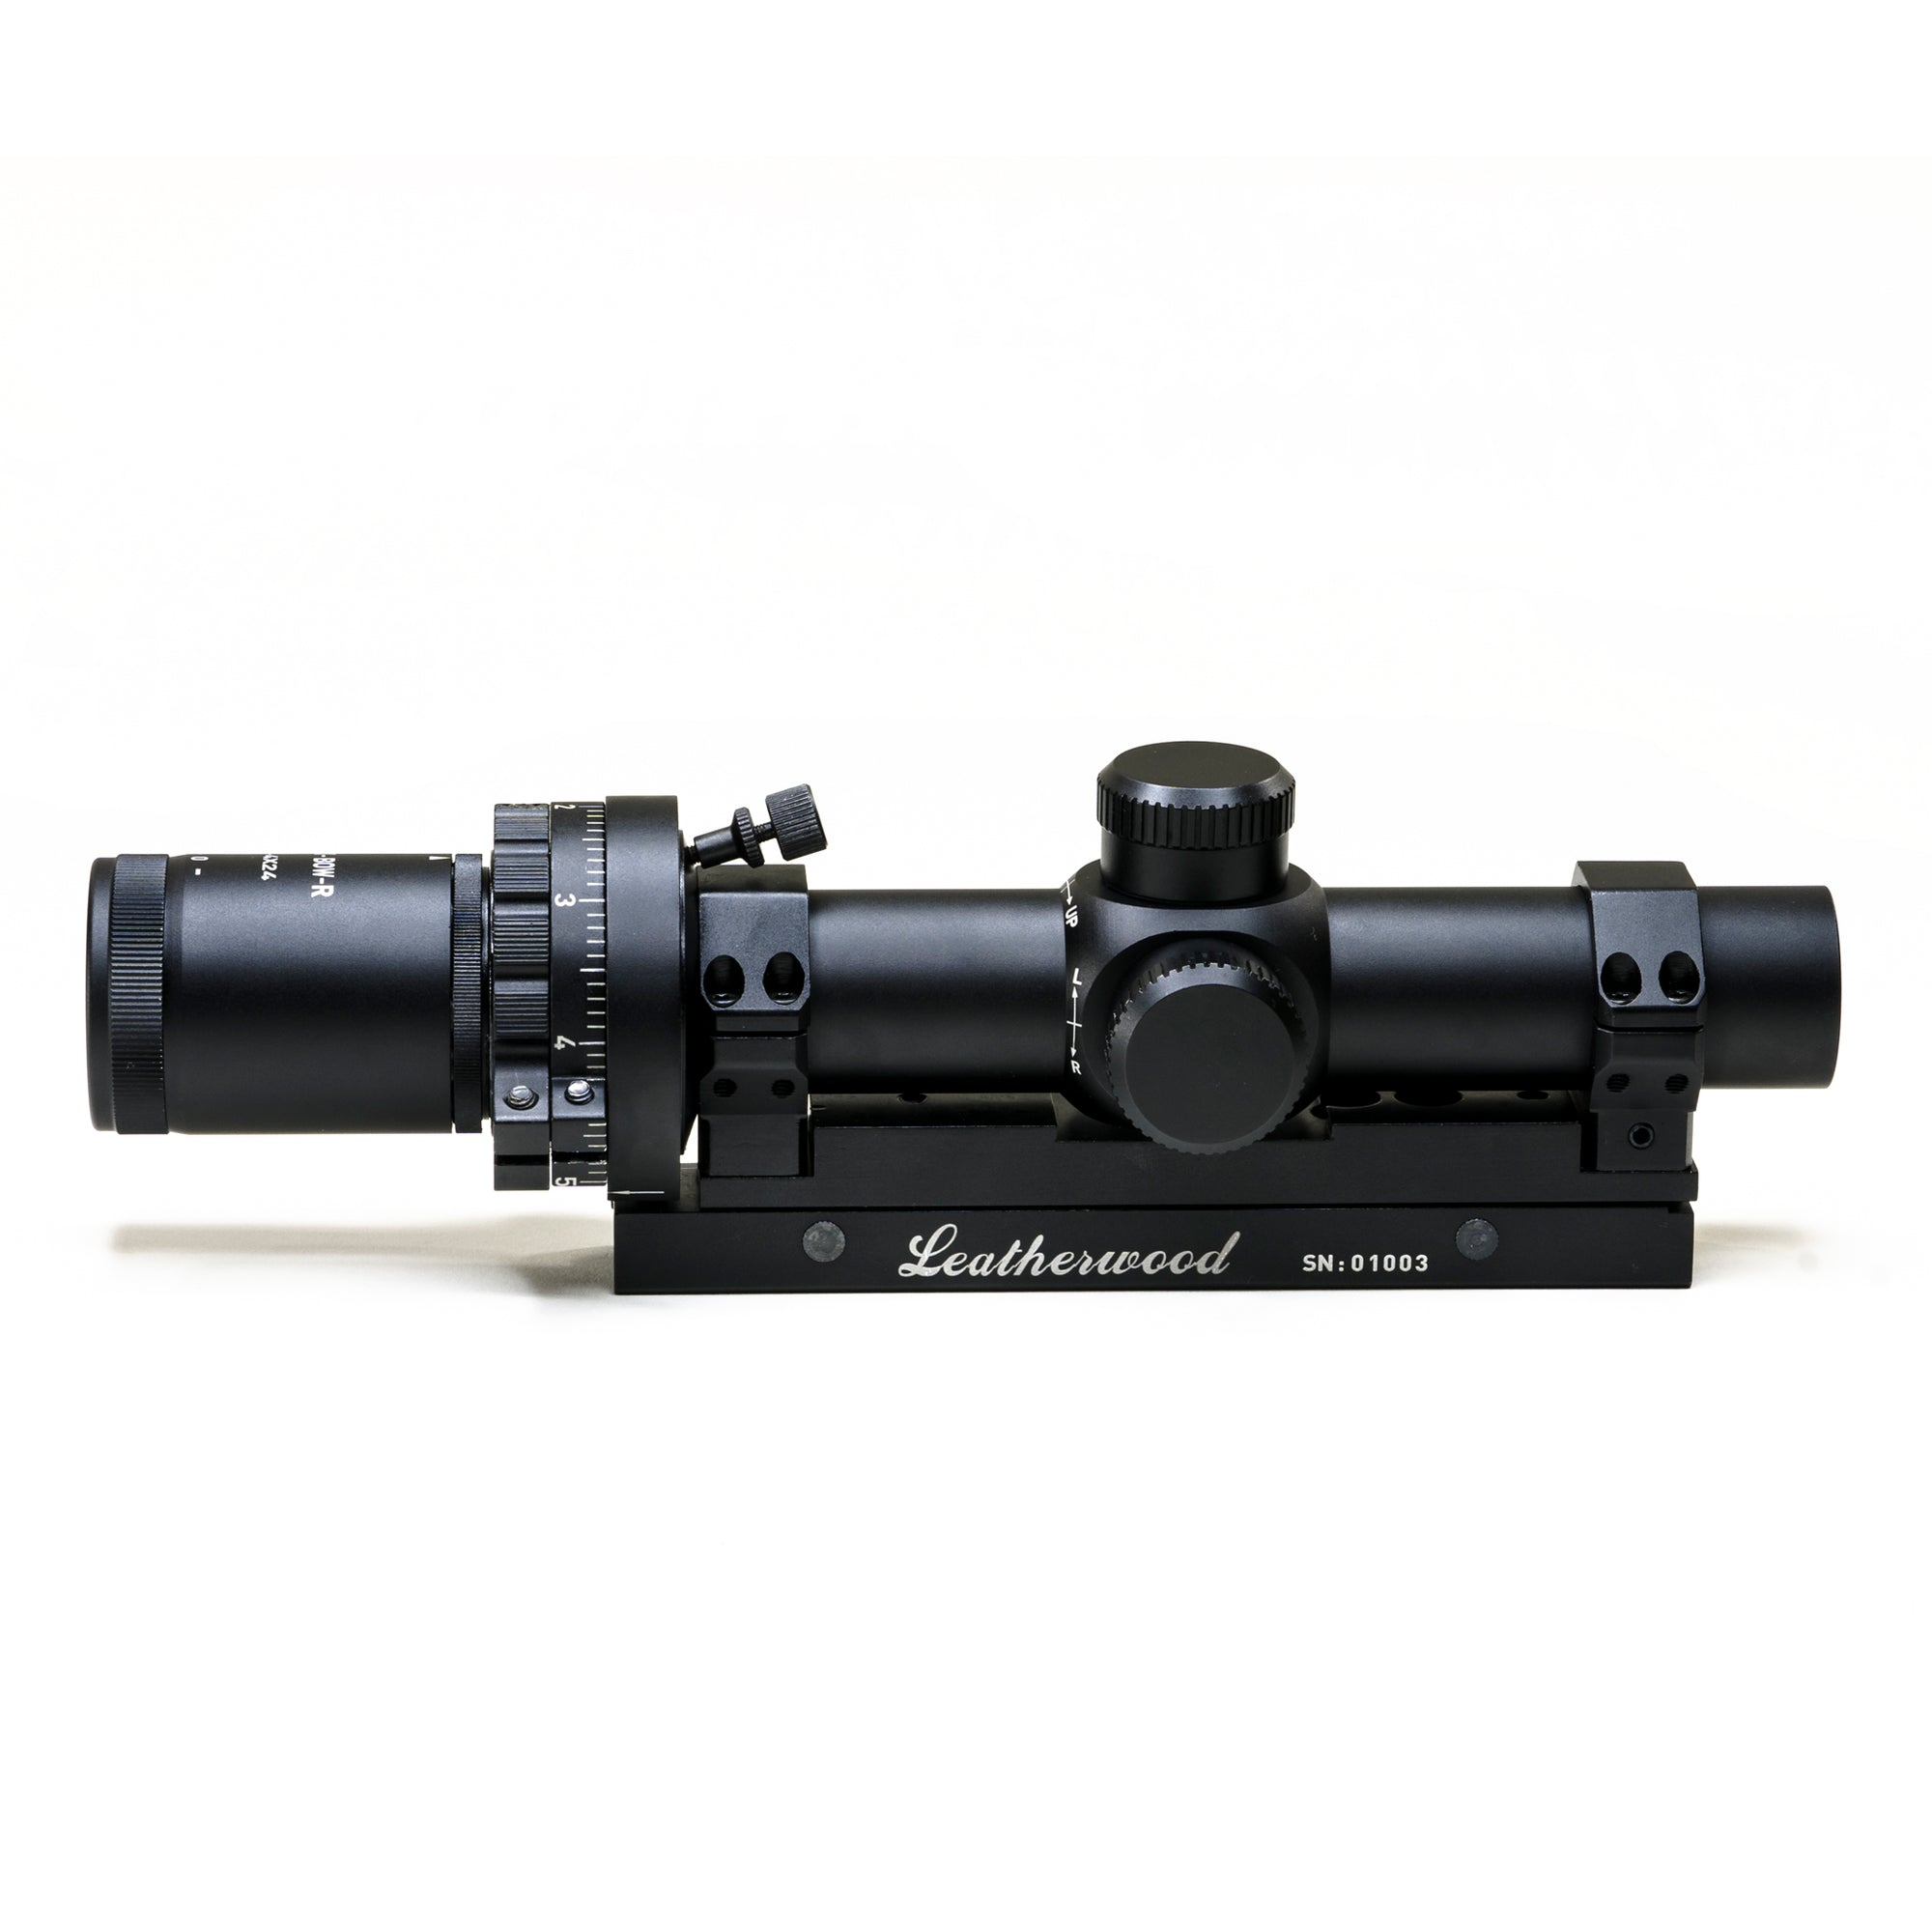 ART X-BOW Crossbow Scope Side Angle View Eyepiece